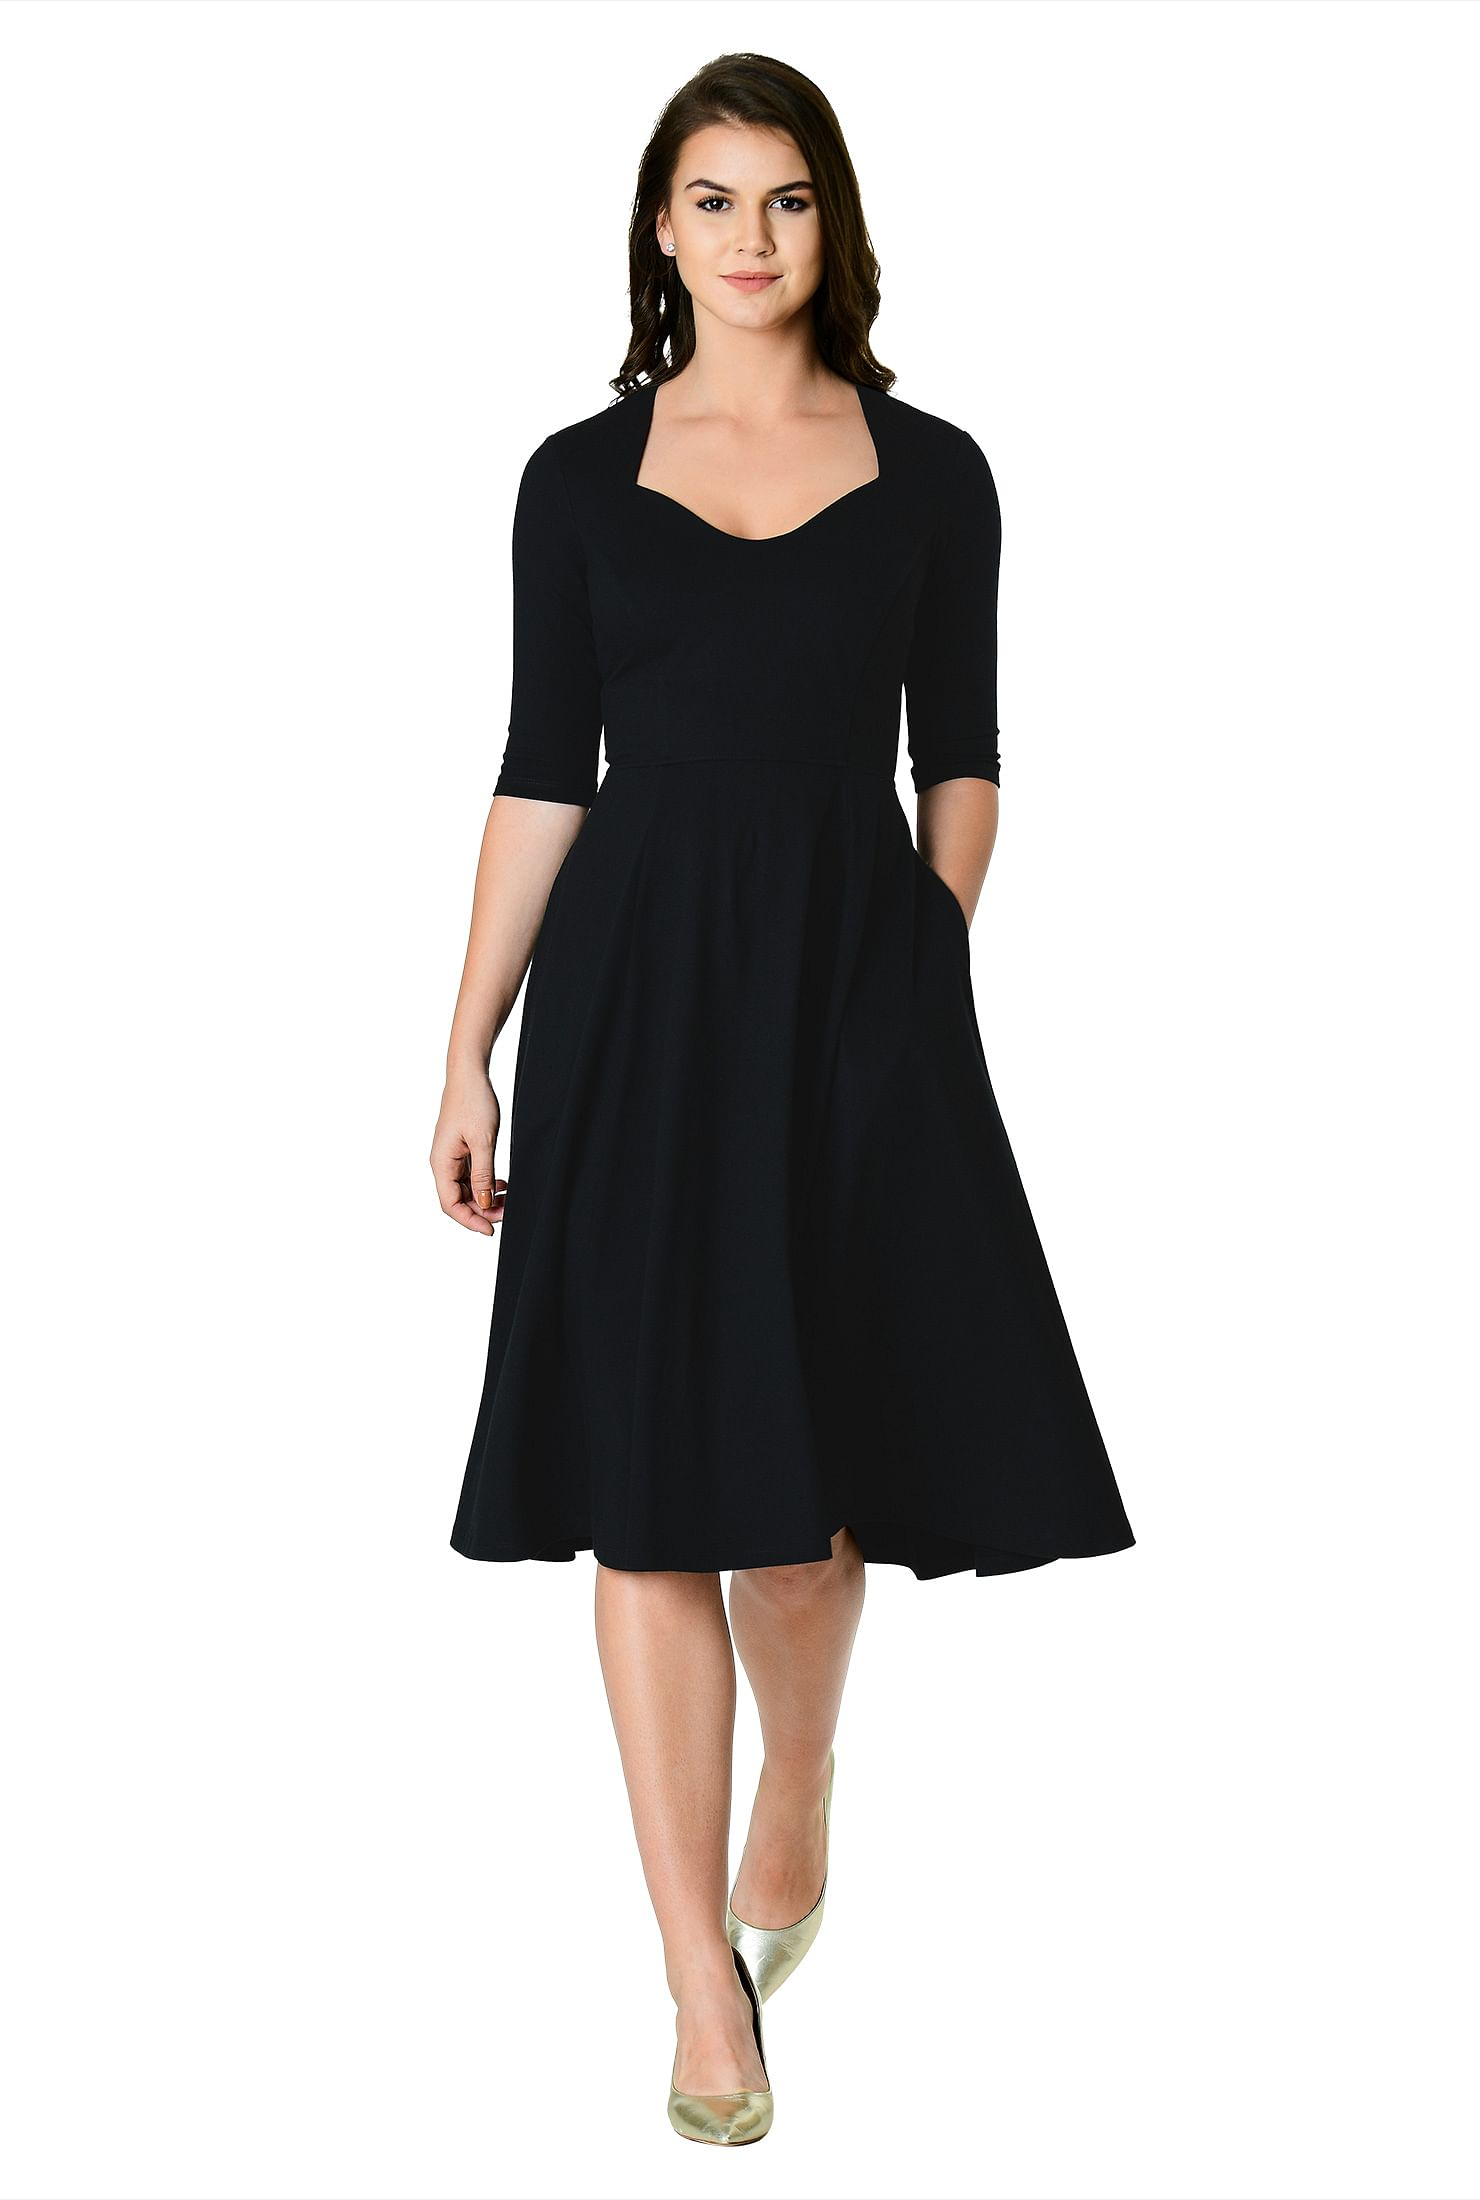 0d49b814a7b2 below knee length dresses, black dresses, cotton/spandex Dresses, day  dresses